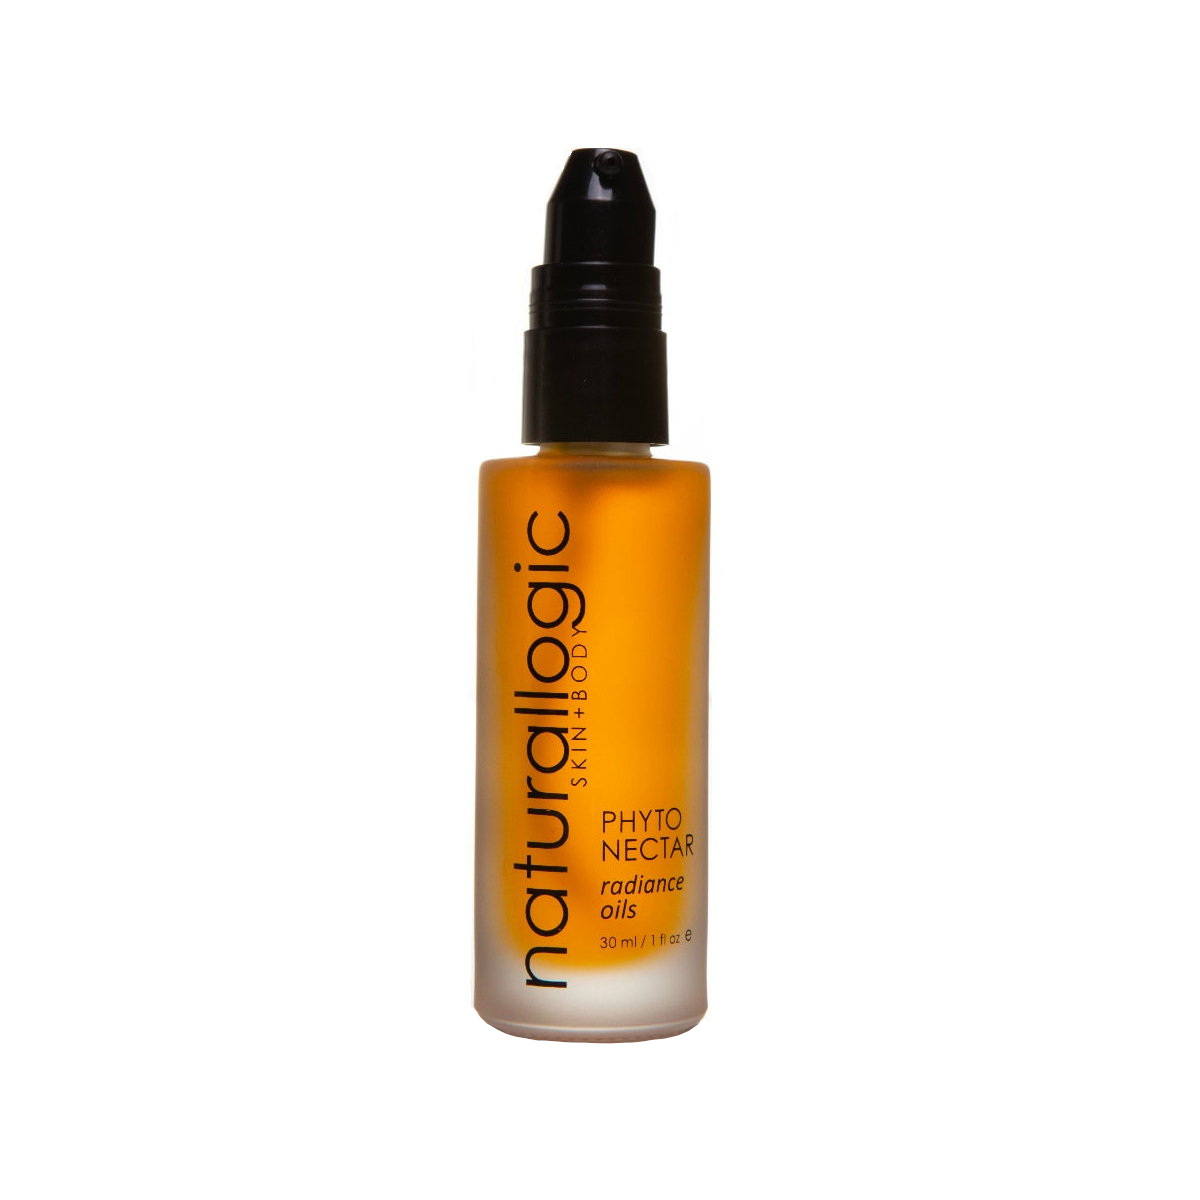 PHYTO NECTAR RADIANCE OILS 30 ML